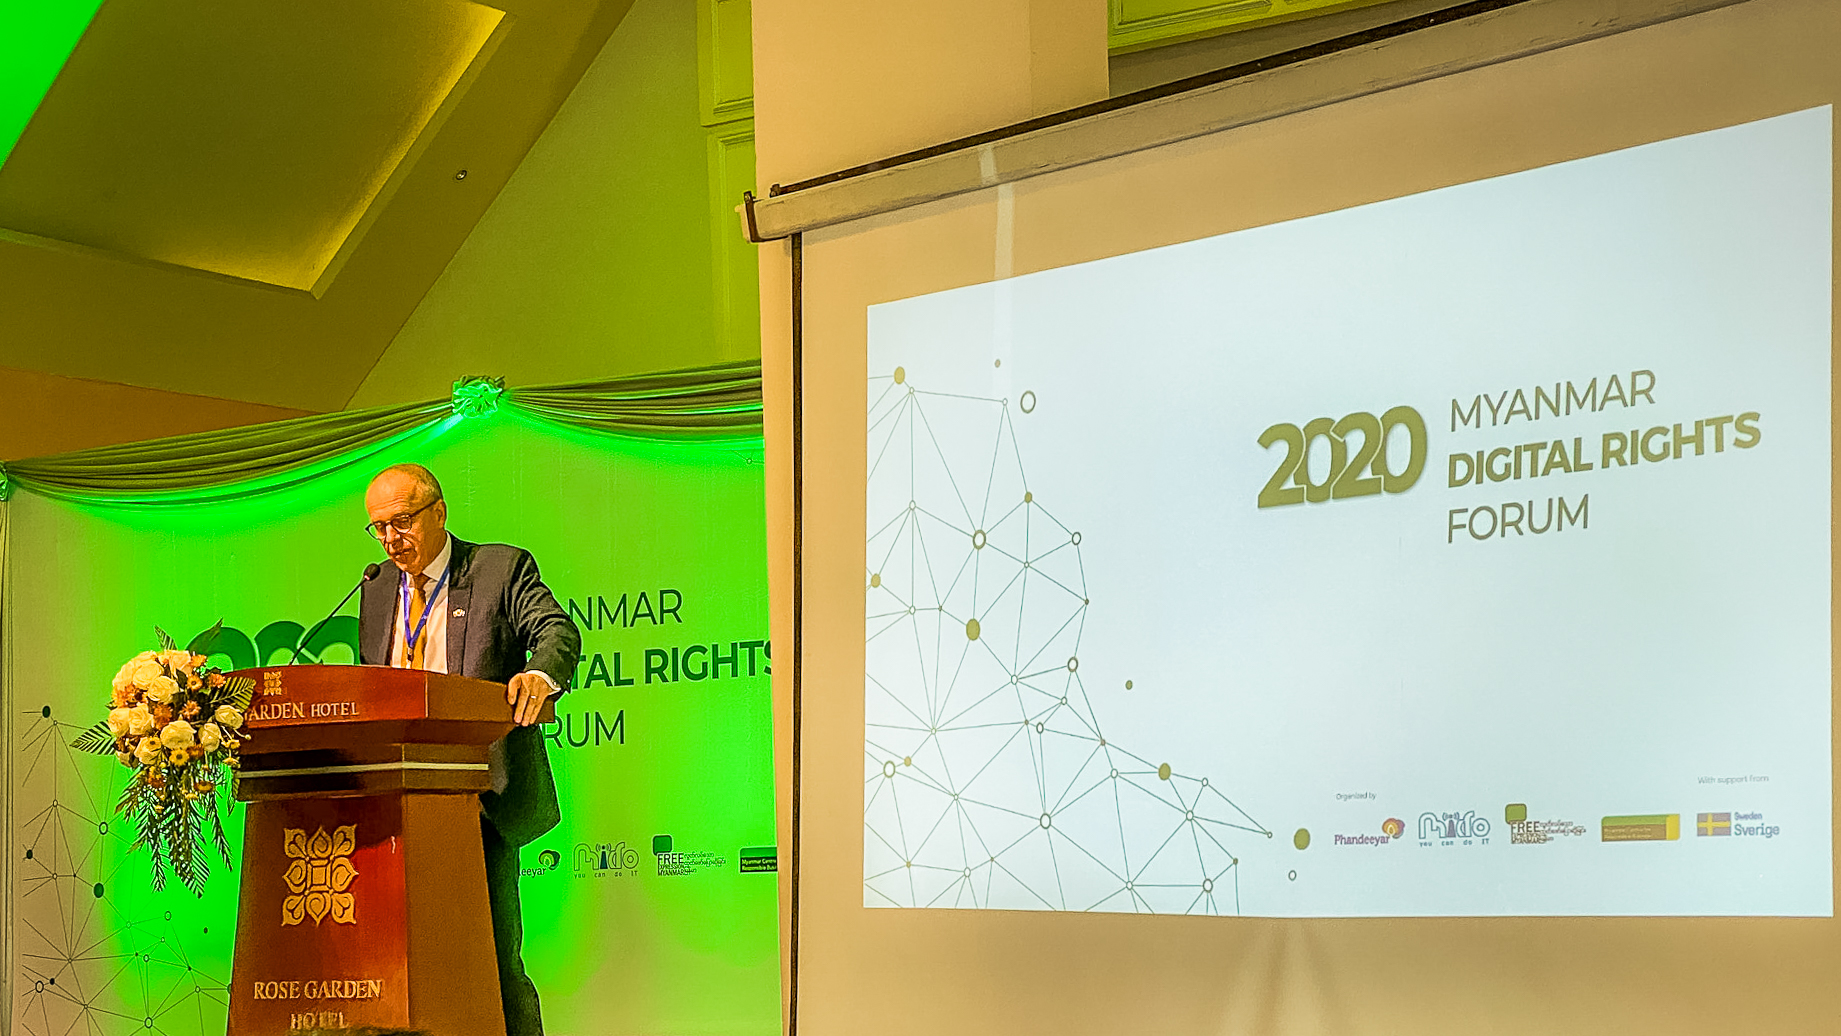 Ambassador of Sweden to Thailand, Myanmar, and Laos PDR Staffan Herrstrom shares in his keynote speech that he is excited to listen and learn more about digital rights in the region at the fourth Myanmar Digital Rights Forum in Yangon.